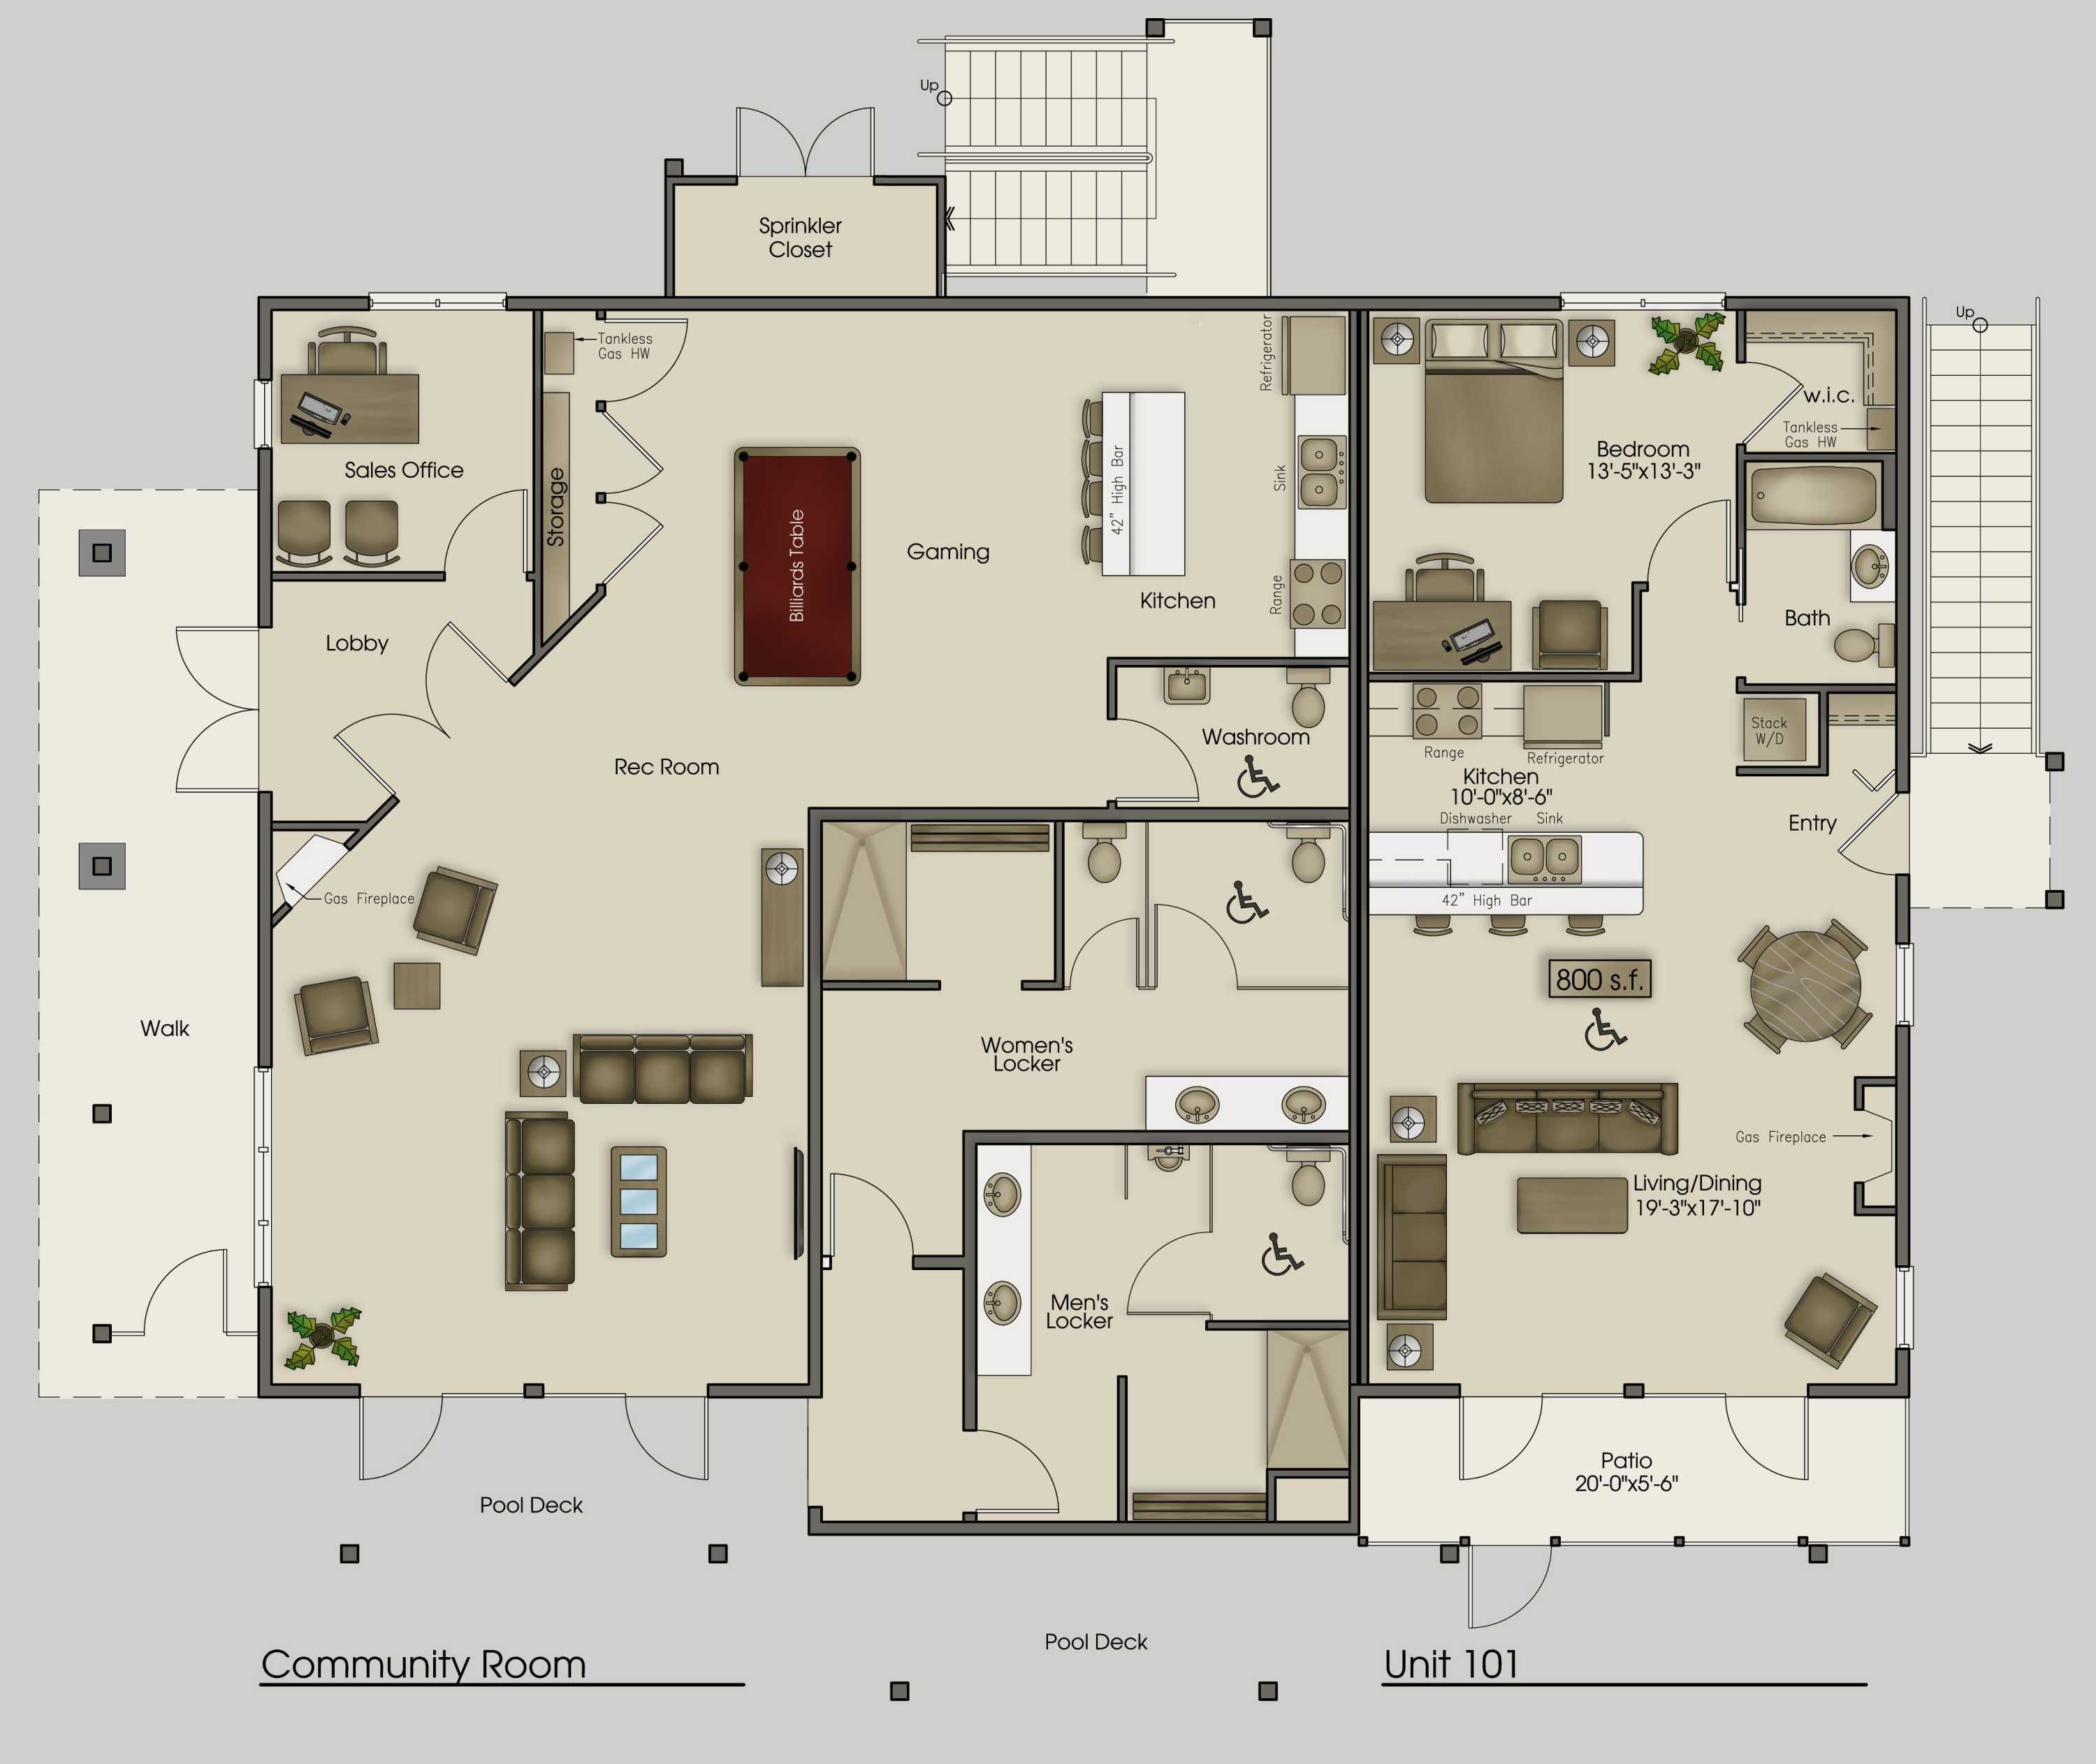 Mega Villa Plans Clubhouse Plan Pictures Apartments Sample Giesendesign Floor Plan Software Kitchen Floor Plans Kitchen Layout Plans Apartment Plans